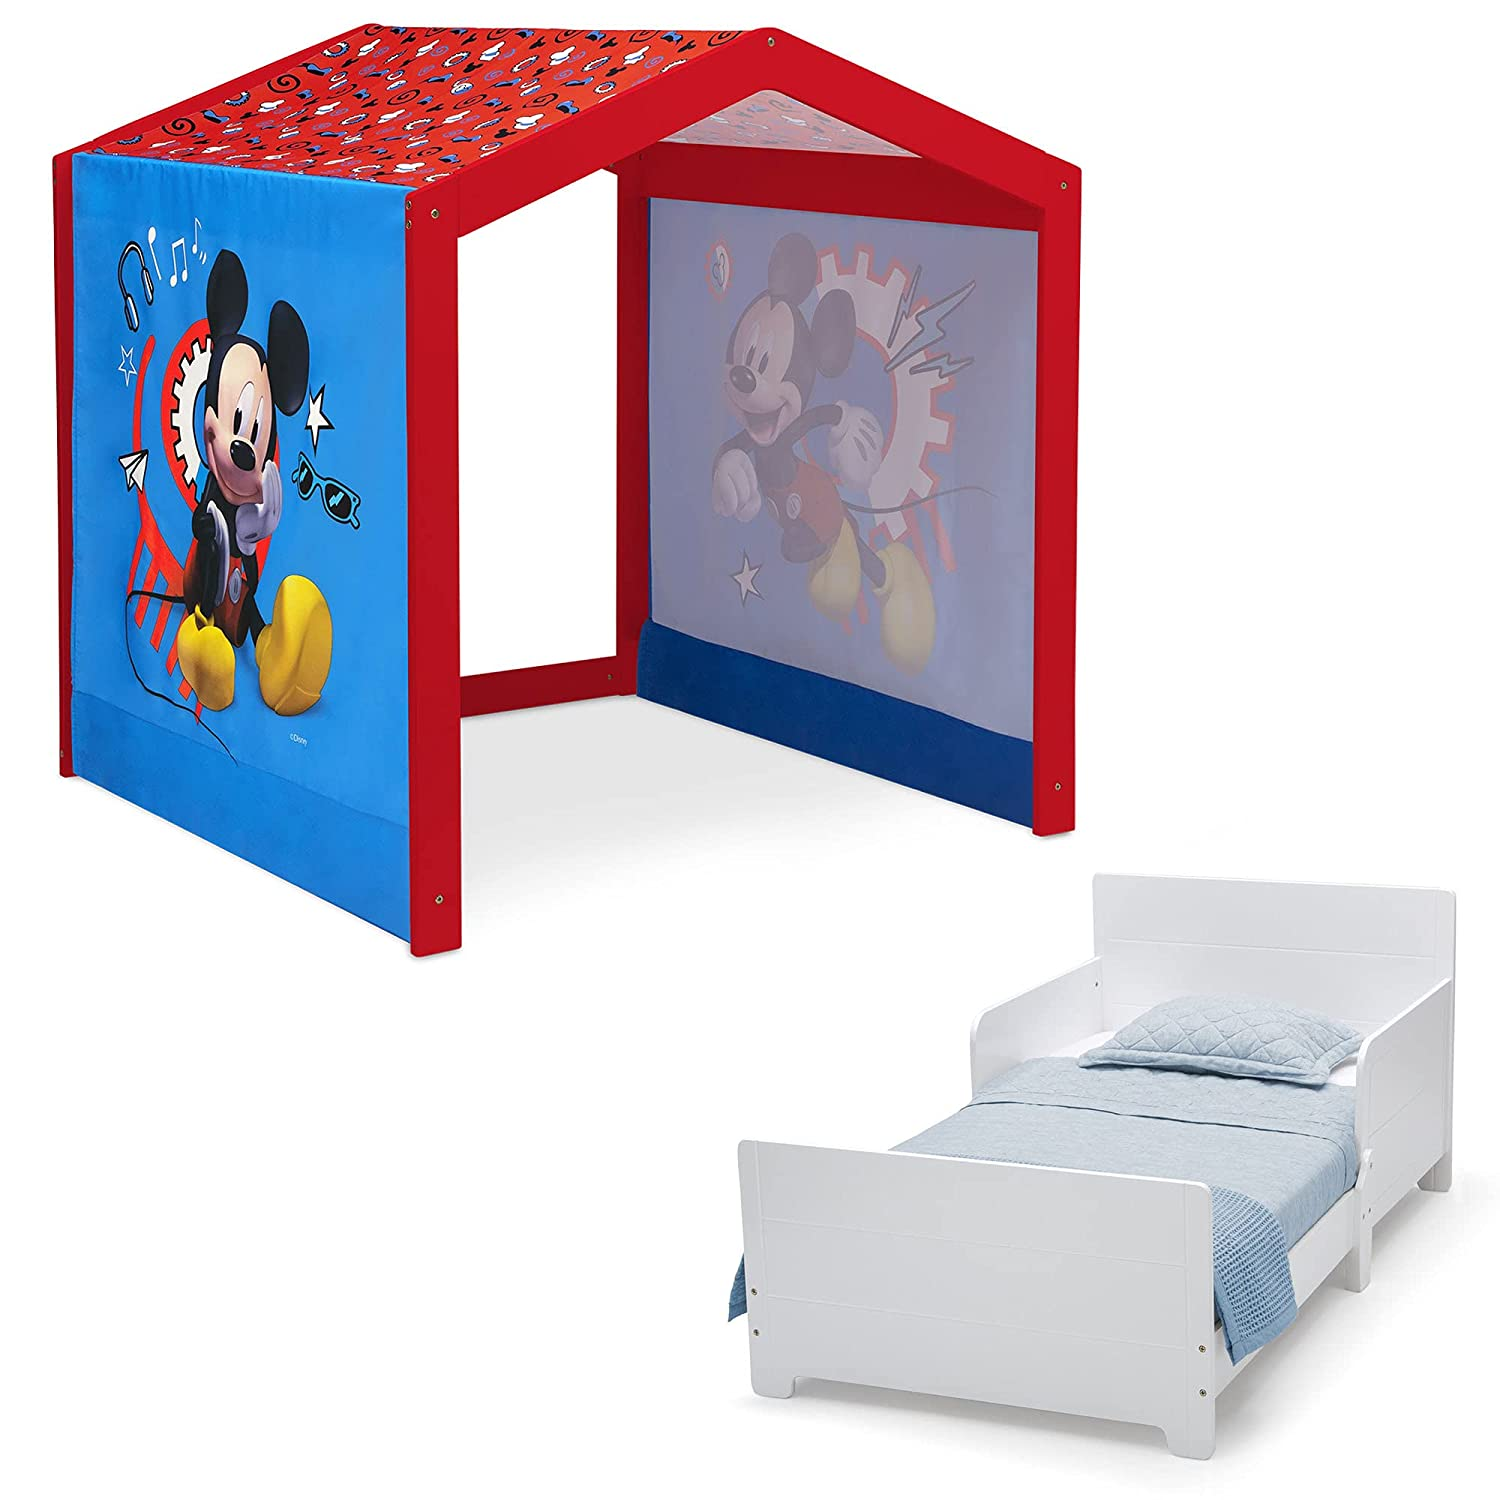 Disney Mickey Mouse Indoor Playhouse with Tent Fabric + overseas MySize Ranking integrated 1st place W